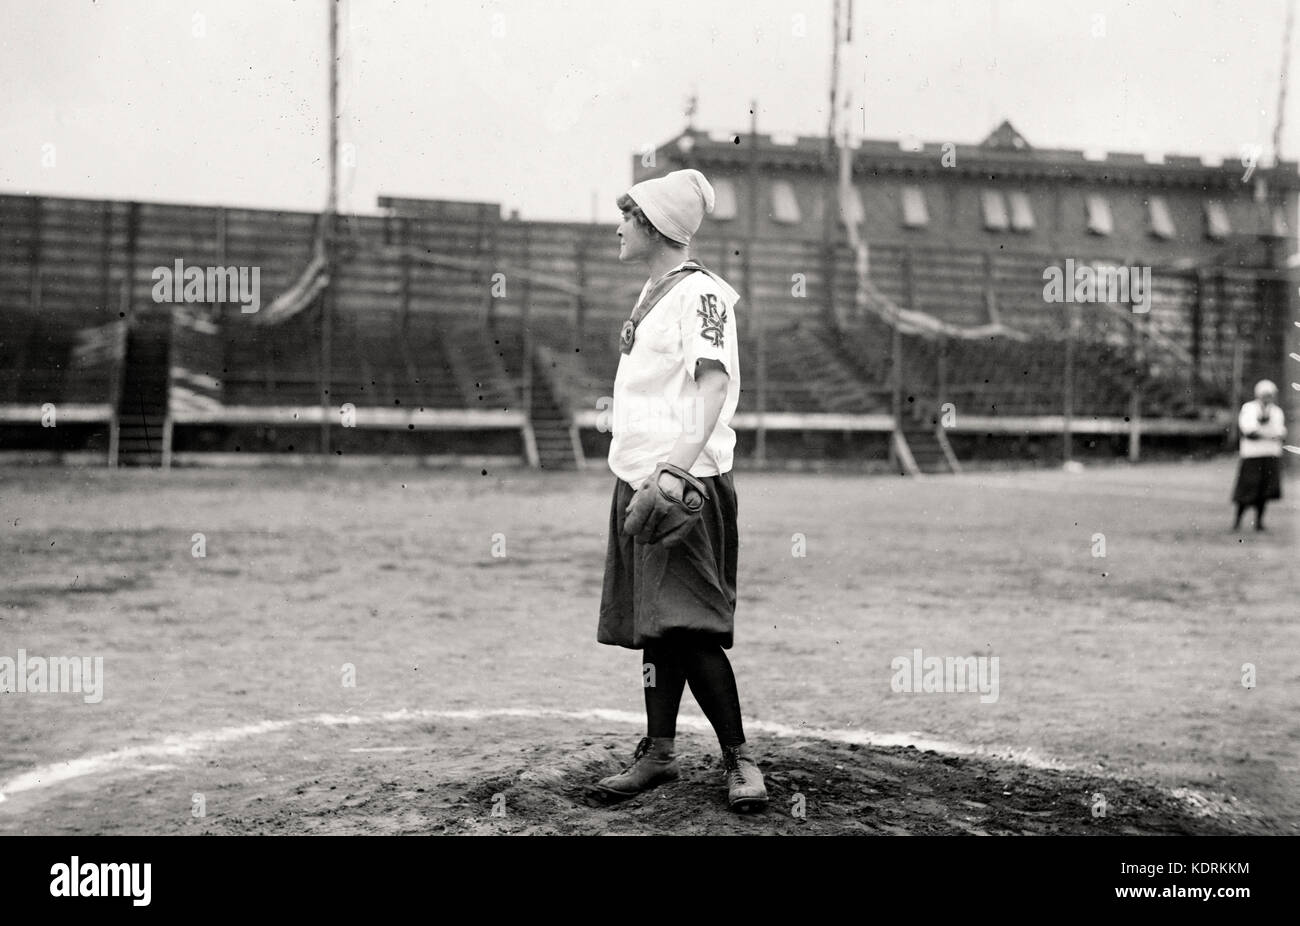 New York Giants féminine de basket-ball vers 1913 Photo Stock